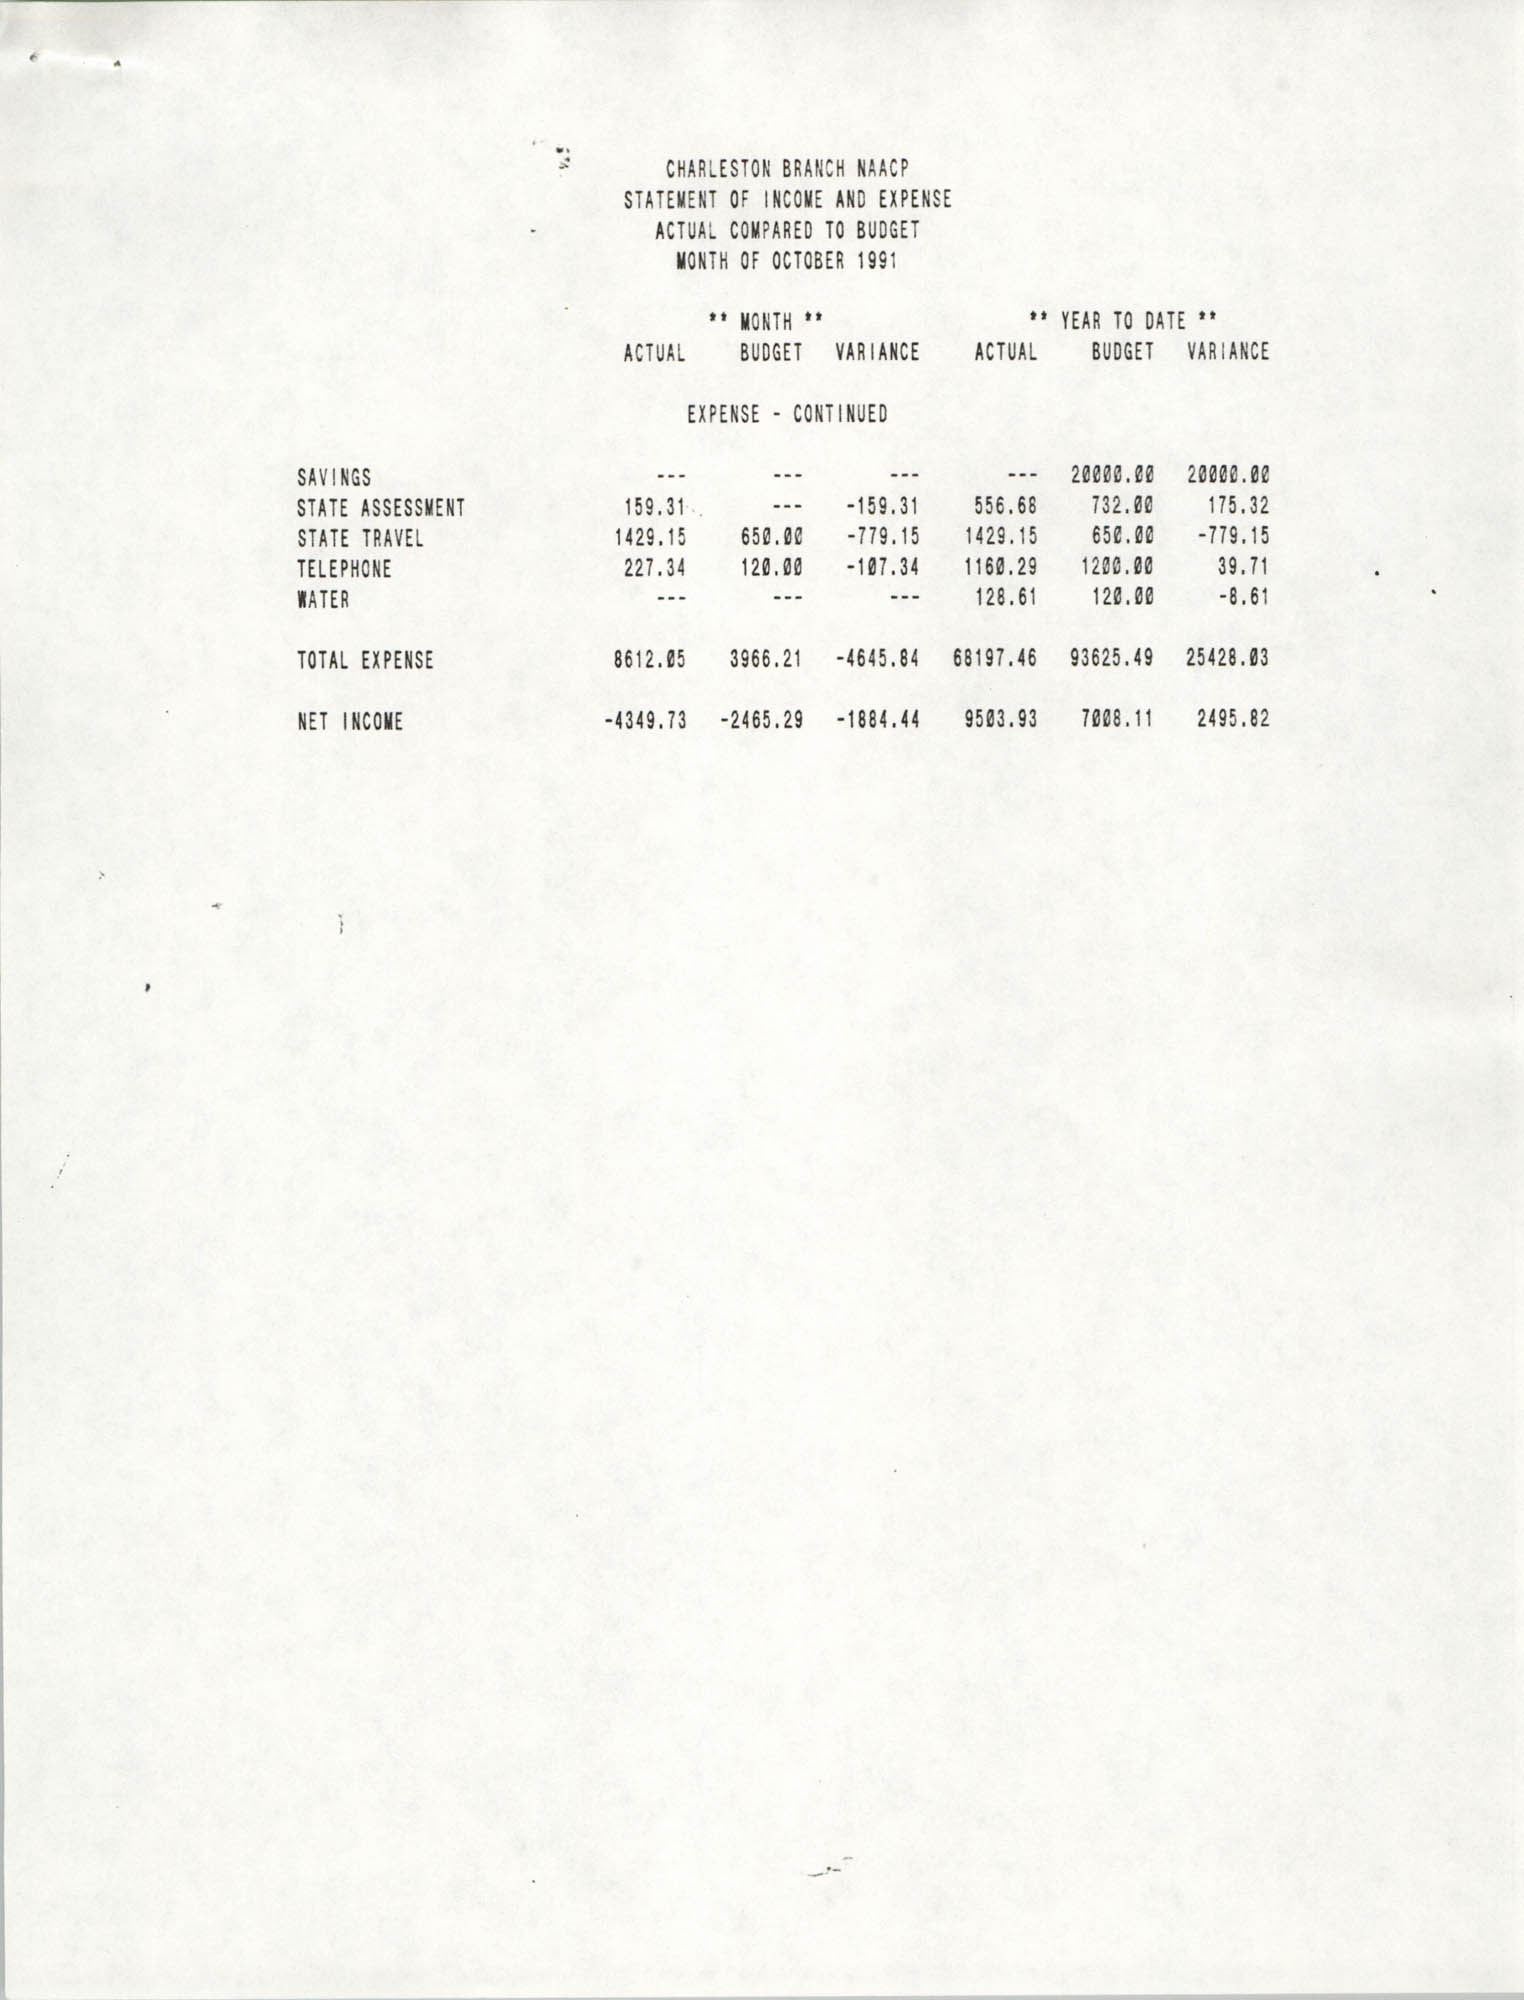 Charleston Branch of the NAACP Statement of Income and Expense, October 1991, Page 2